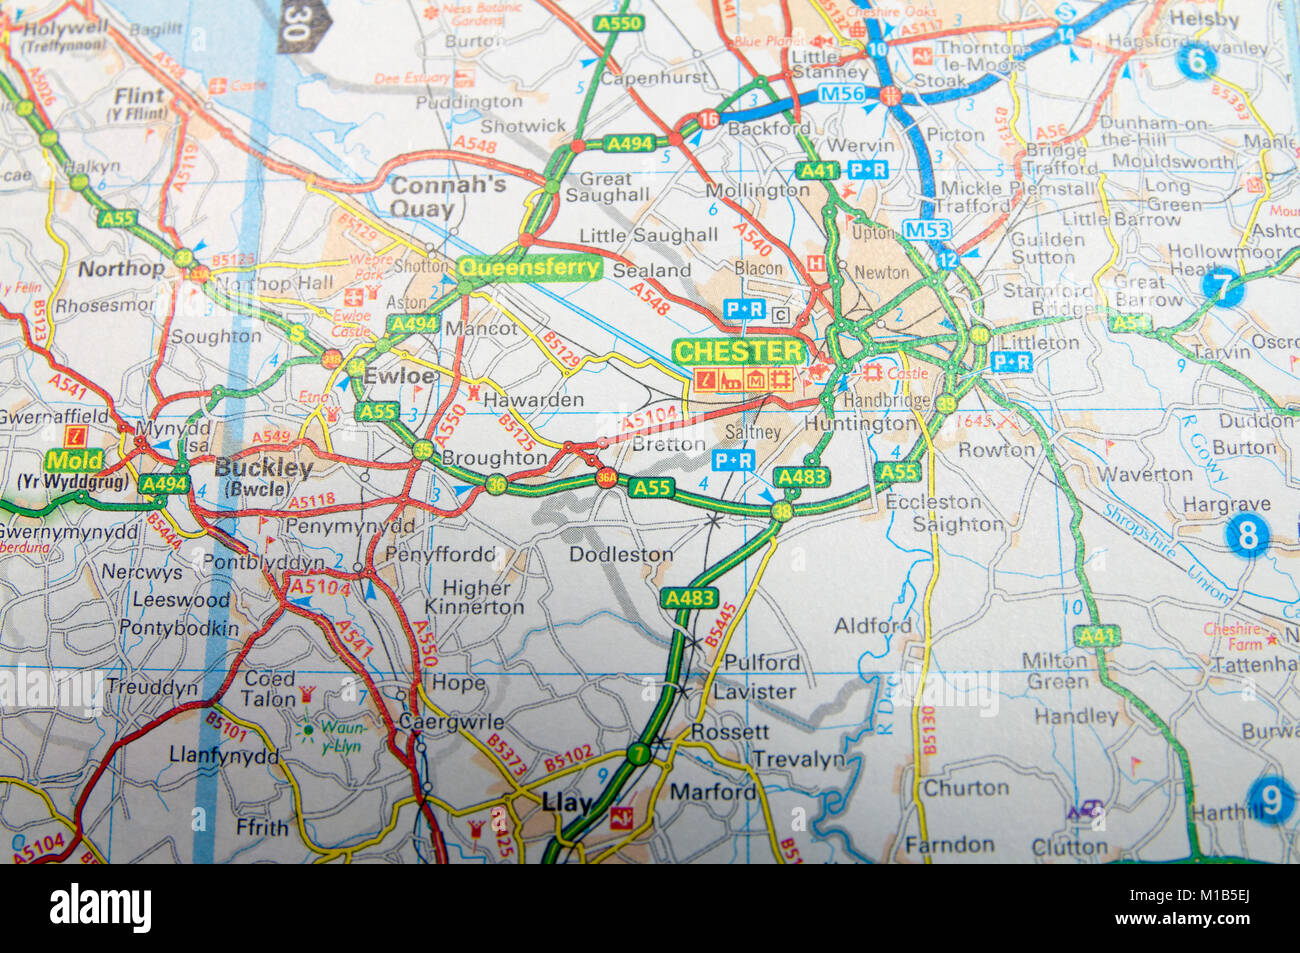 Road Map Of Chester England Stock Photo 172964138 Alamy